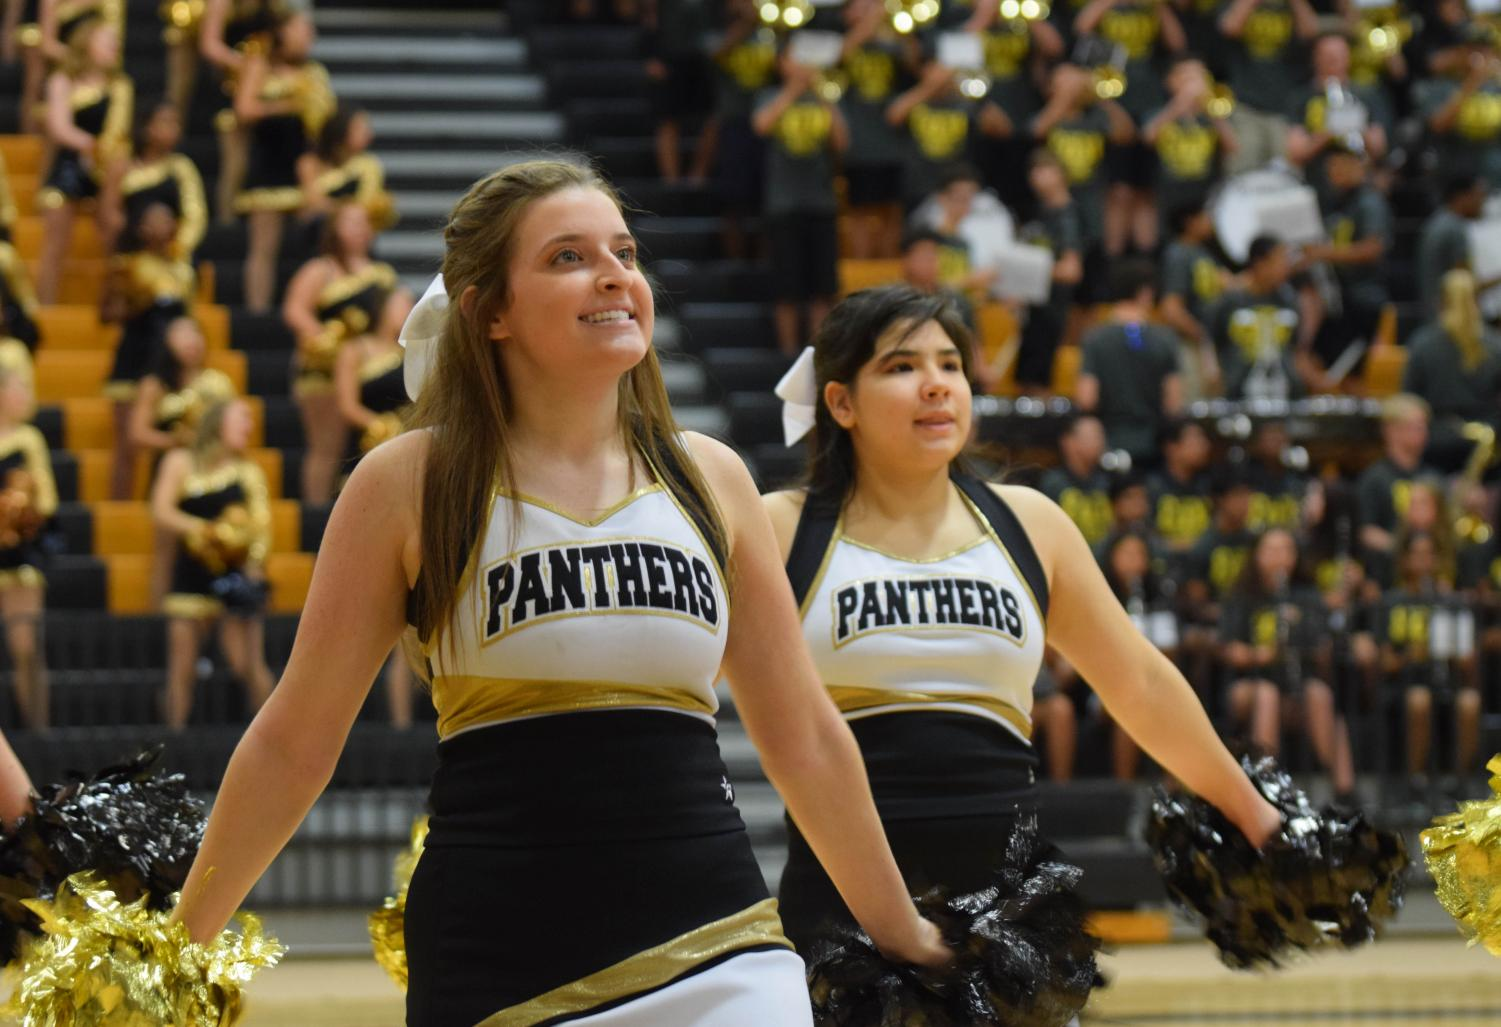 Senior Brooke Craghead and junior Vivian Easley cheer during the band performance at the Camp Panther pep rally on Aug. 3.